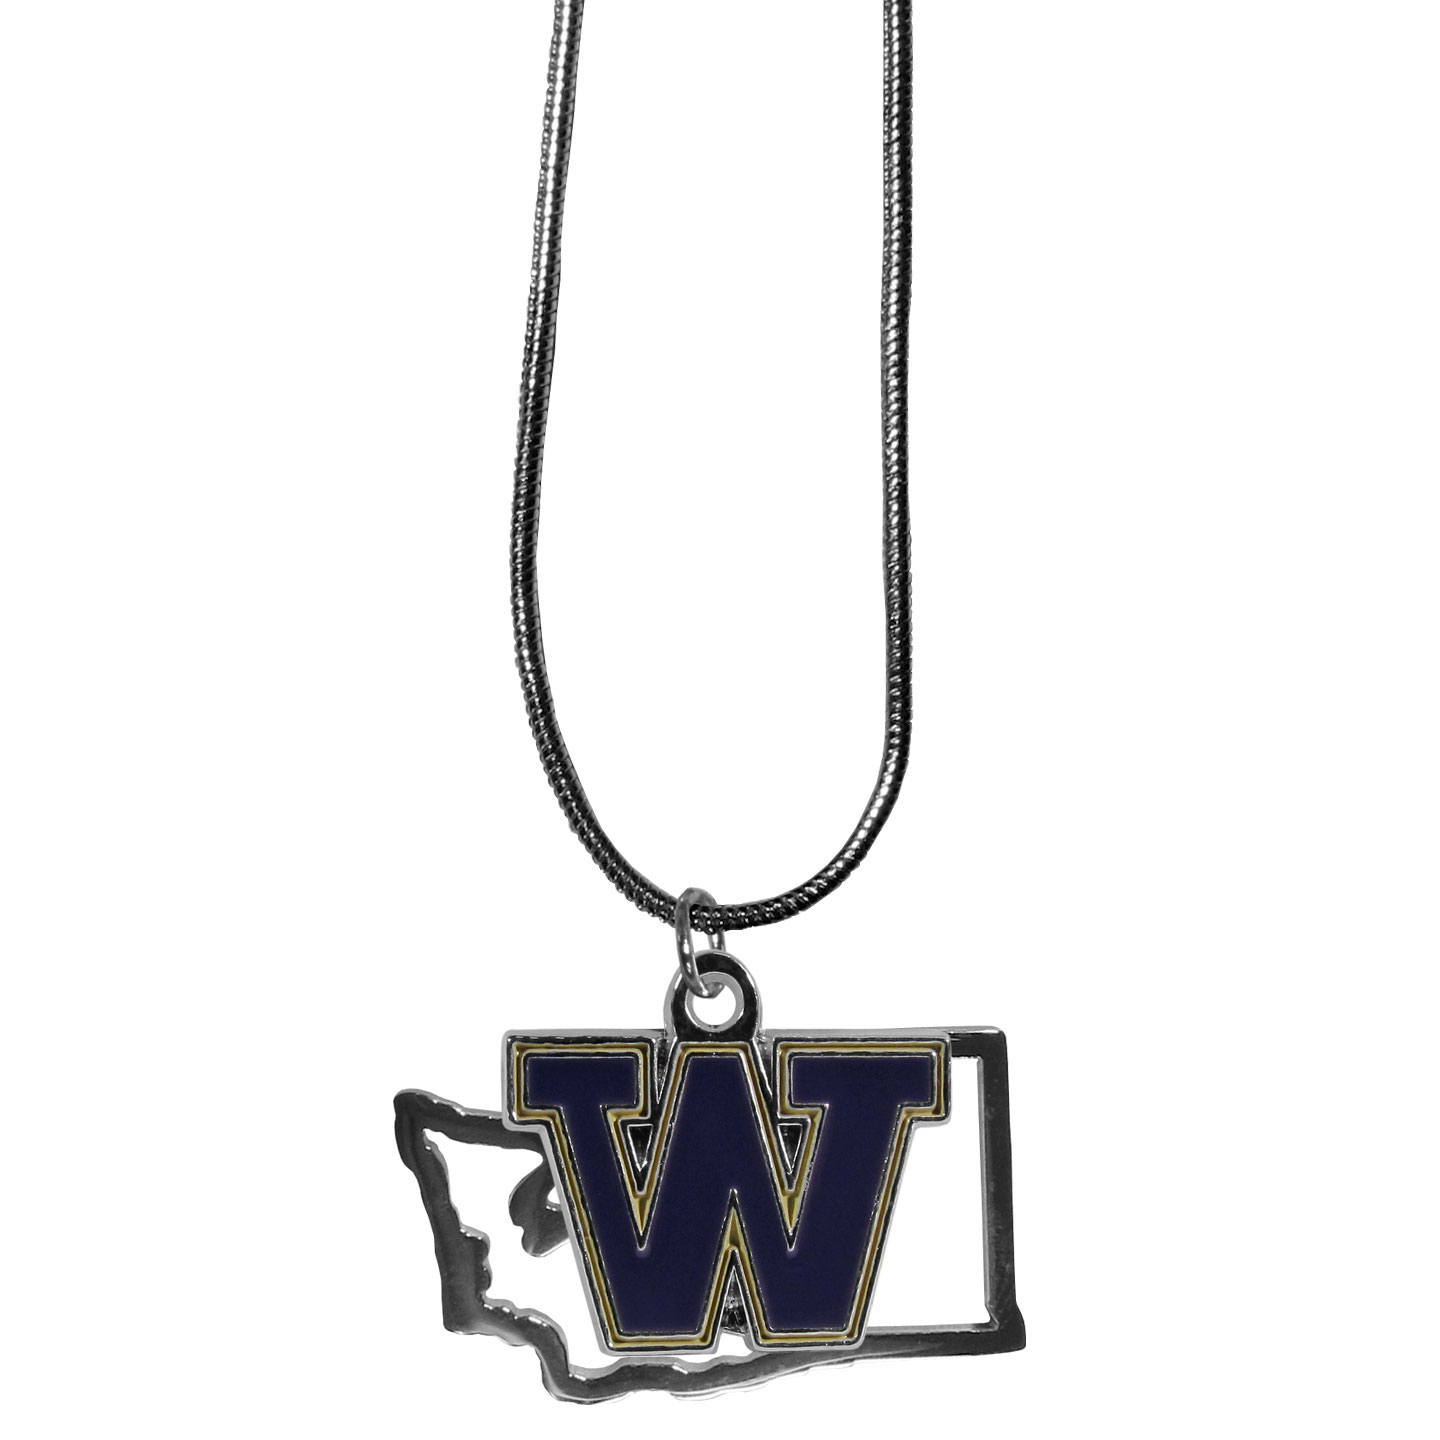 Washington Huskies State Charm Necklace - Get in on the trend! State themes are a trend that just keeps getting more popular and these necklaces take the state style and give it a sporty twist with a Washington Huskies added to the state outline charm. The come on a snake chain that is 22 inches long.